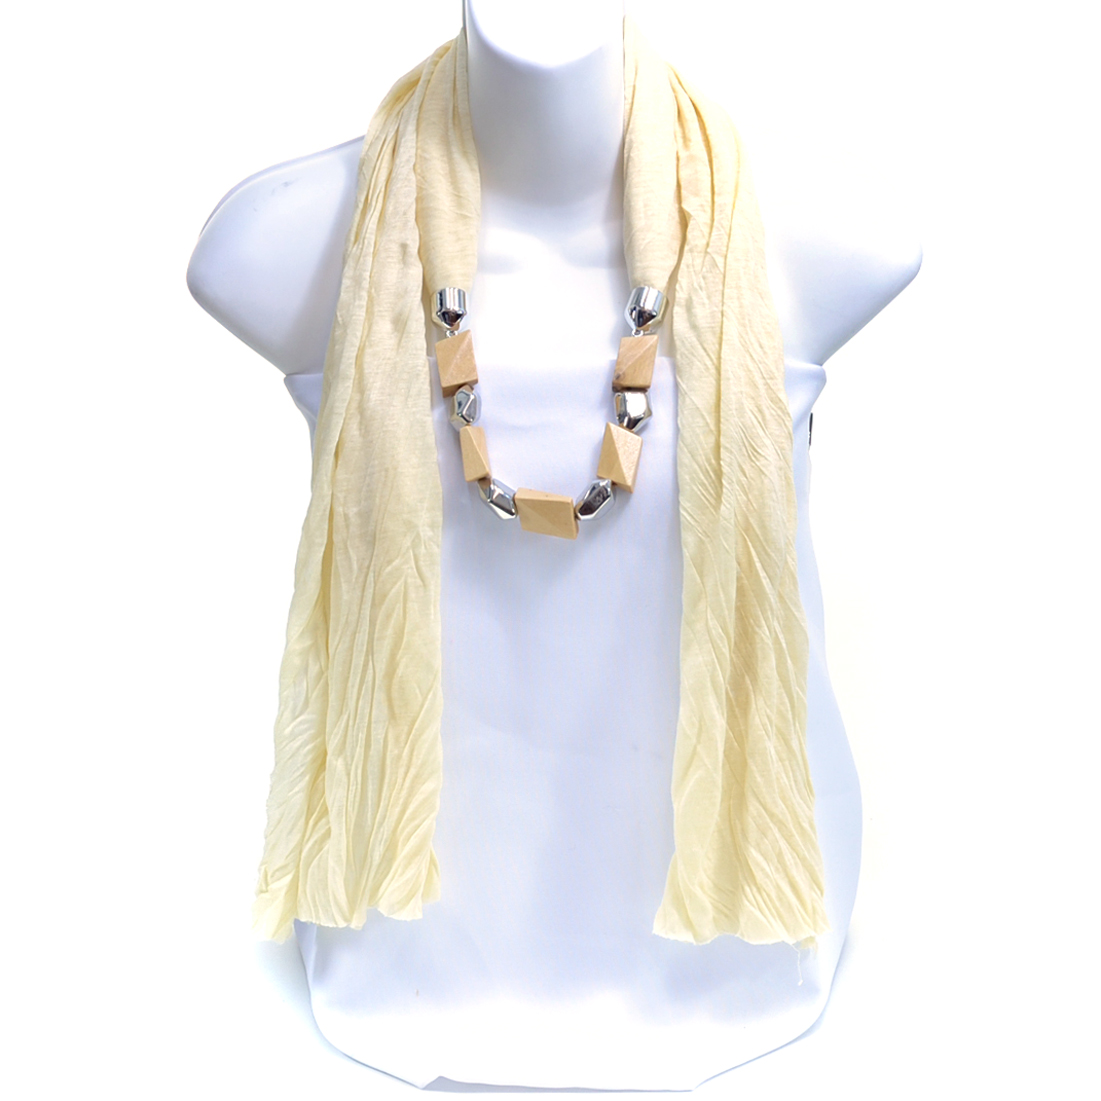 Light Weight Wooden Rhombus Bead Clean Edge No Fringe Scarf with Silver Tone Accents